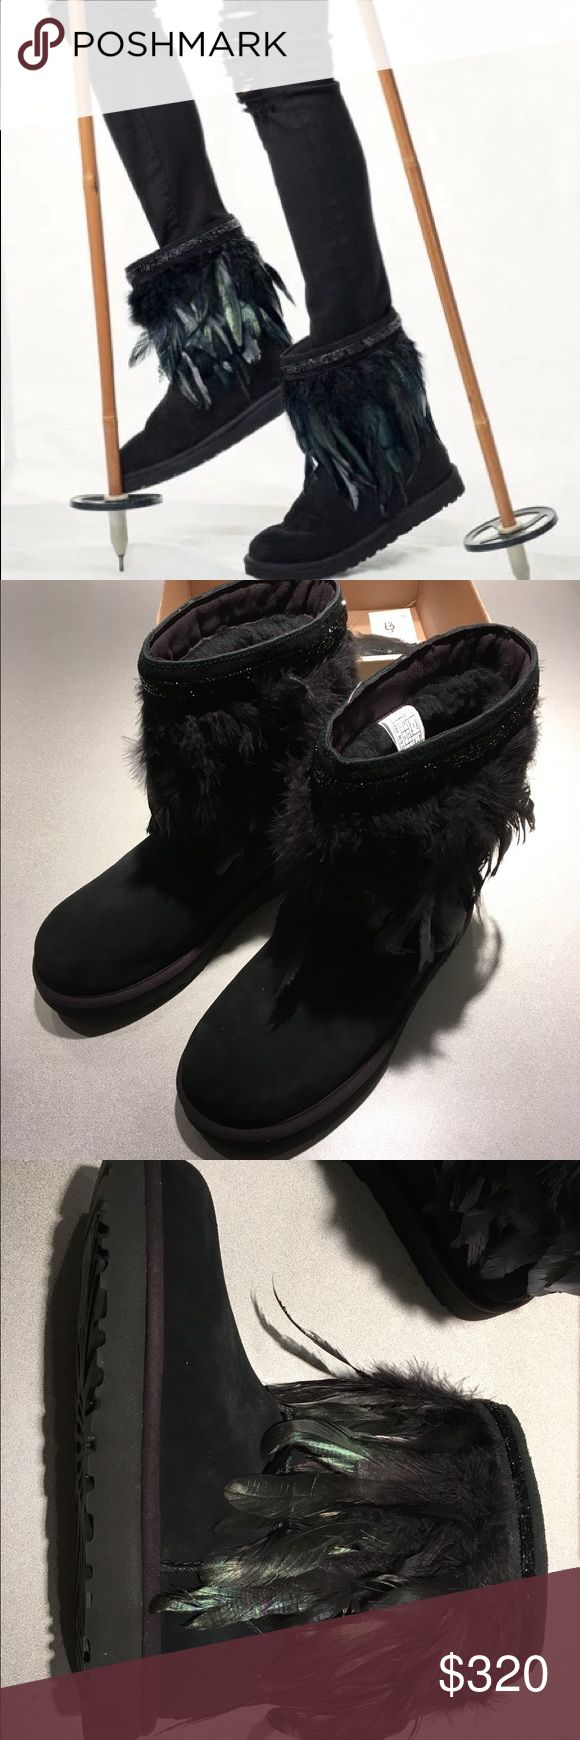 """UGG Classic Short Feather-Trim Boot, Black sz 7 US UGG Classic Short Feather-Trim Boot, Black sz 7 US New in Box (without cover)  UGG suede boot with Swarovski® crystal trim. Ostrich, chicken, and peafowl feather collar. UGGpure™ 100% wool insole and lining. 1"""" flat heel; 8""""H shaft. Round toe. Pull-on style. Treadlite by UGG™ outsole. Imported.  Using only premium materials and employing the highest standards of craftsmanship, UGG® creates footwear, apparel, accessories, and home items that…"""